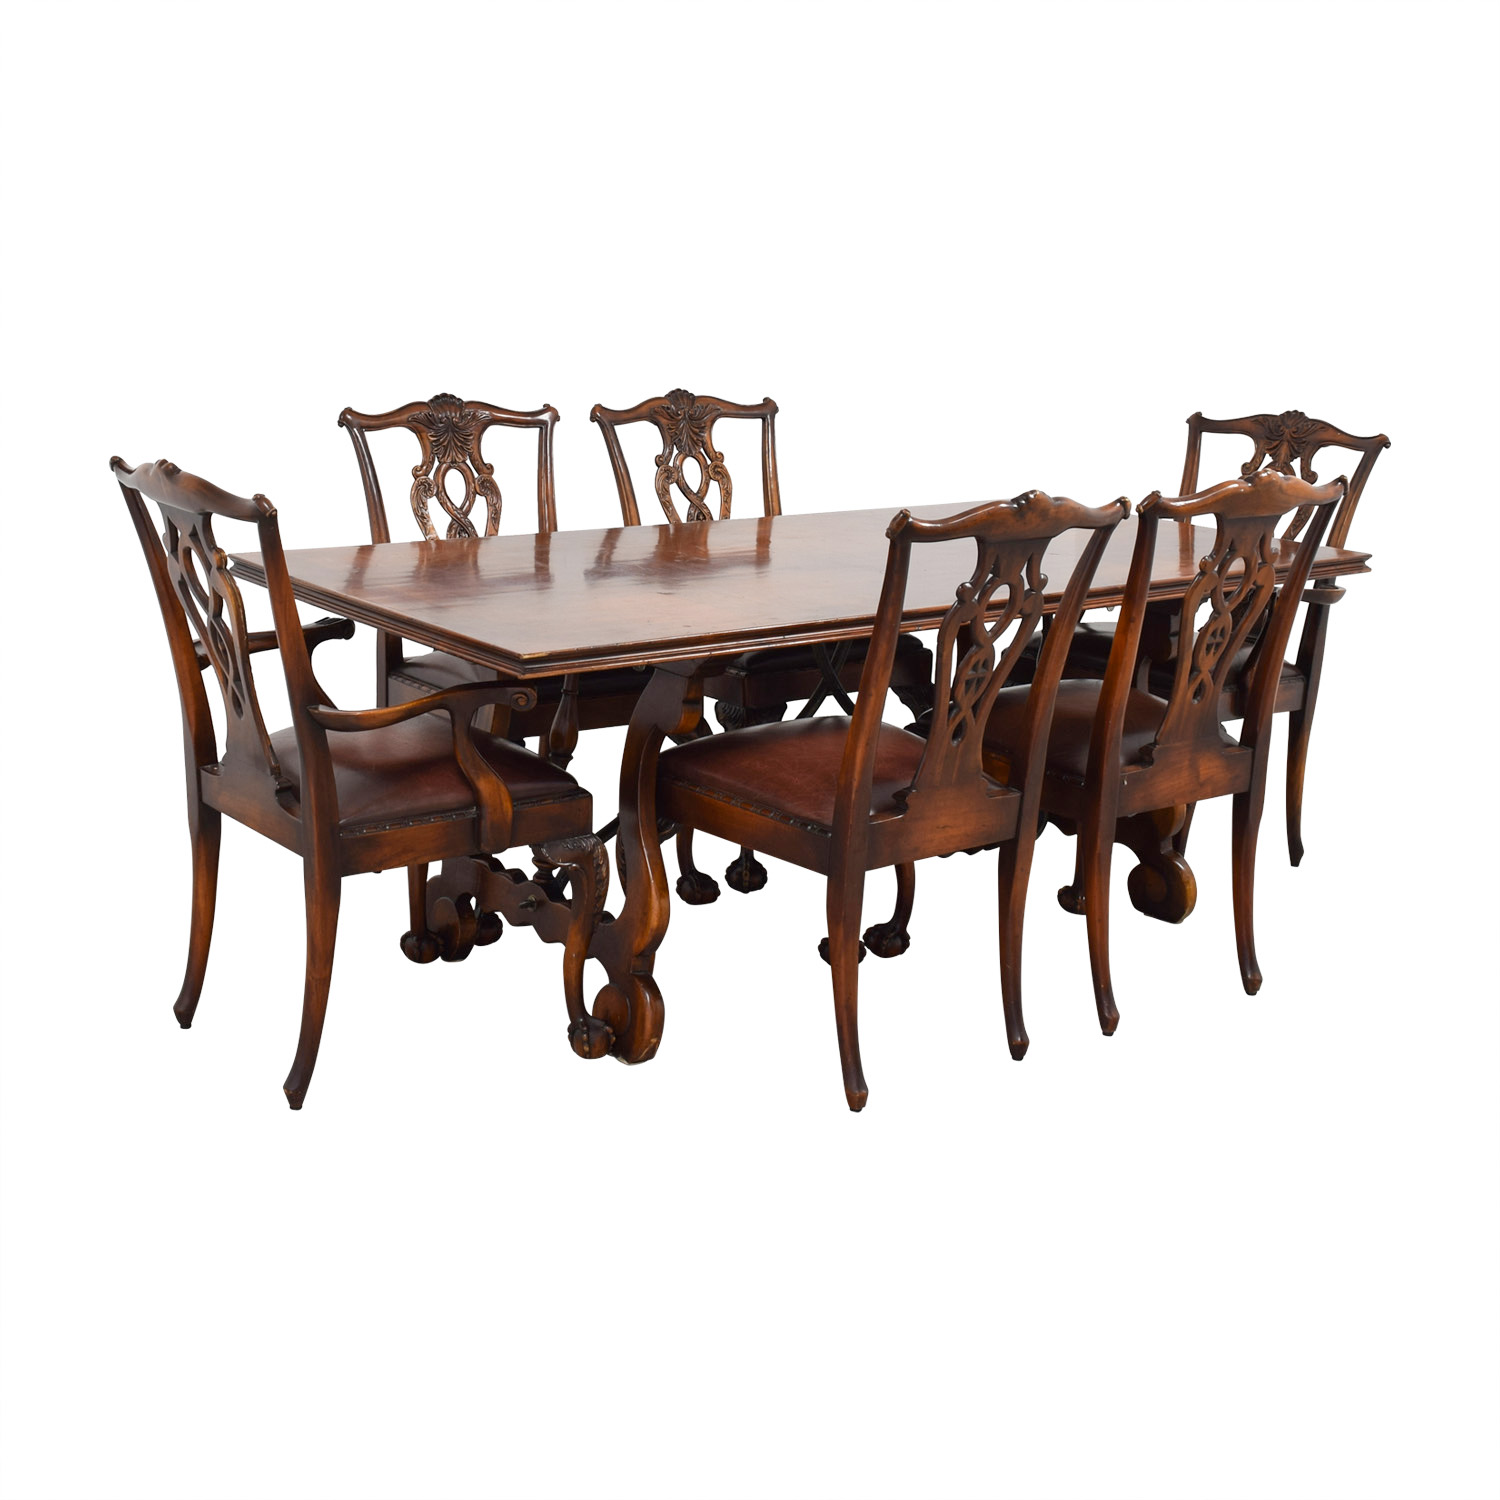 Carved Cherry Wood Dining Set With Leather Upholstered Chairs